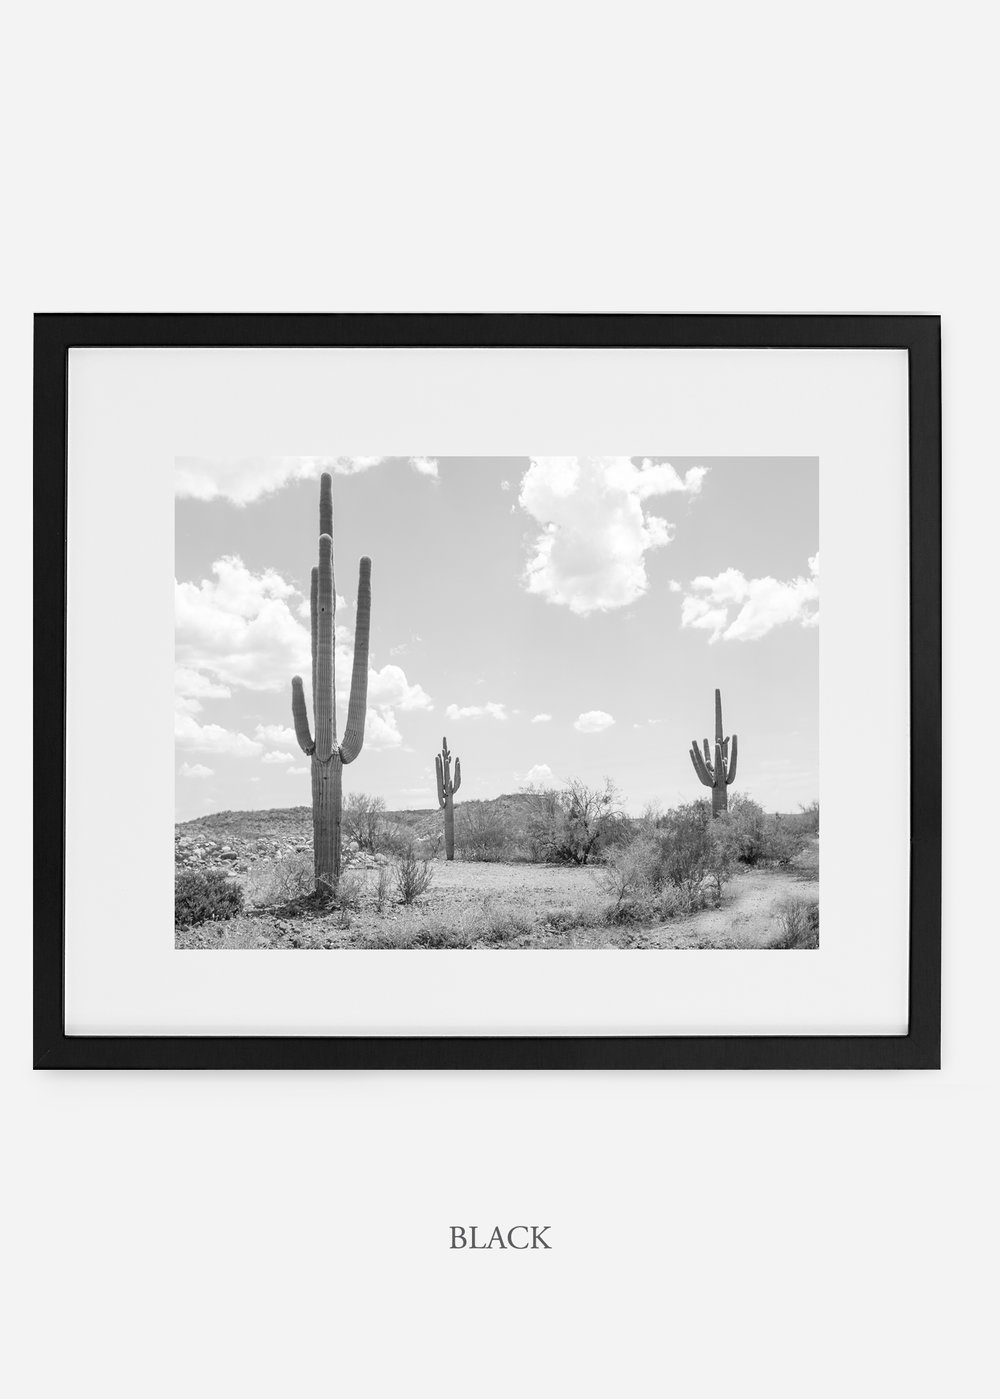 wildercalifornia_blackframe_threesaguaro_cactus_art_interiordesign.jpg